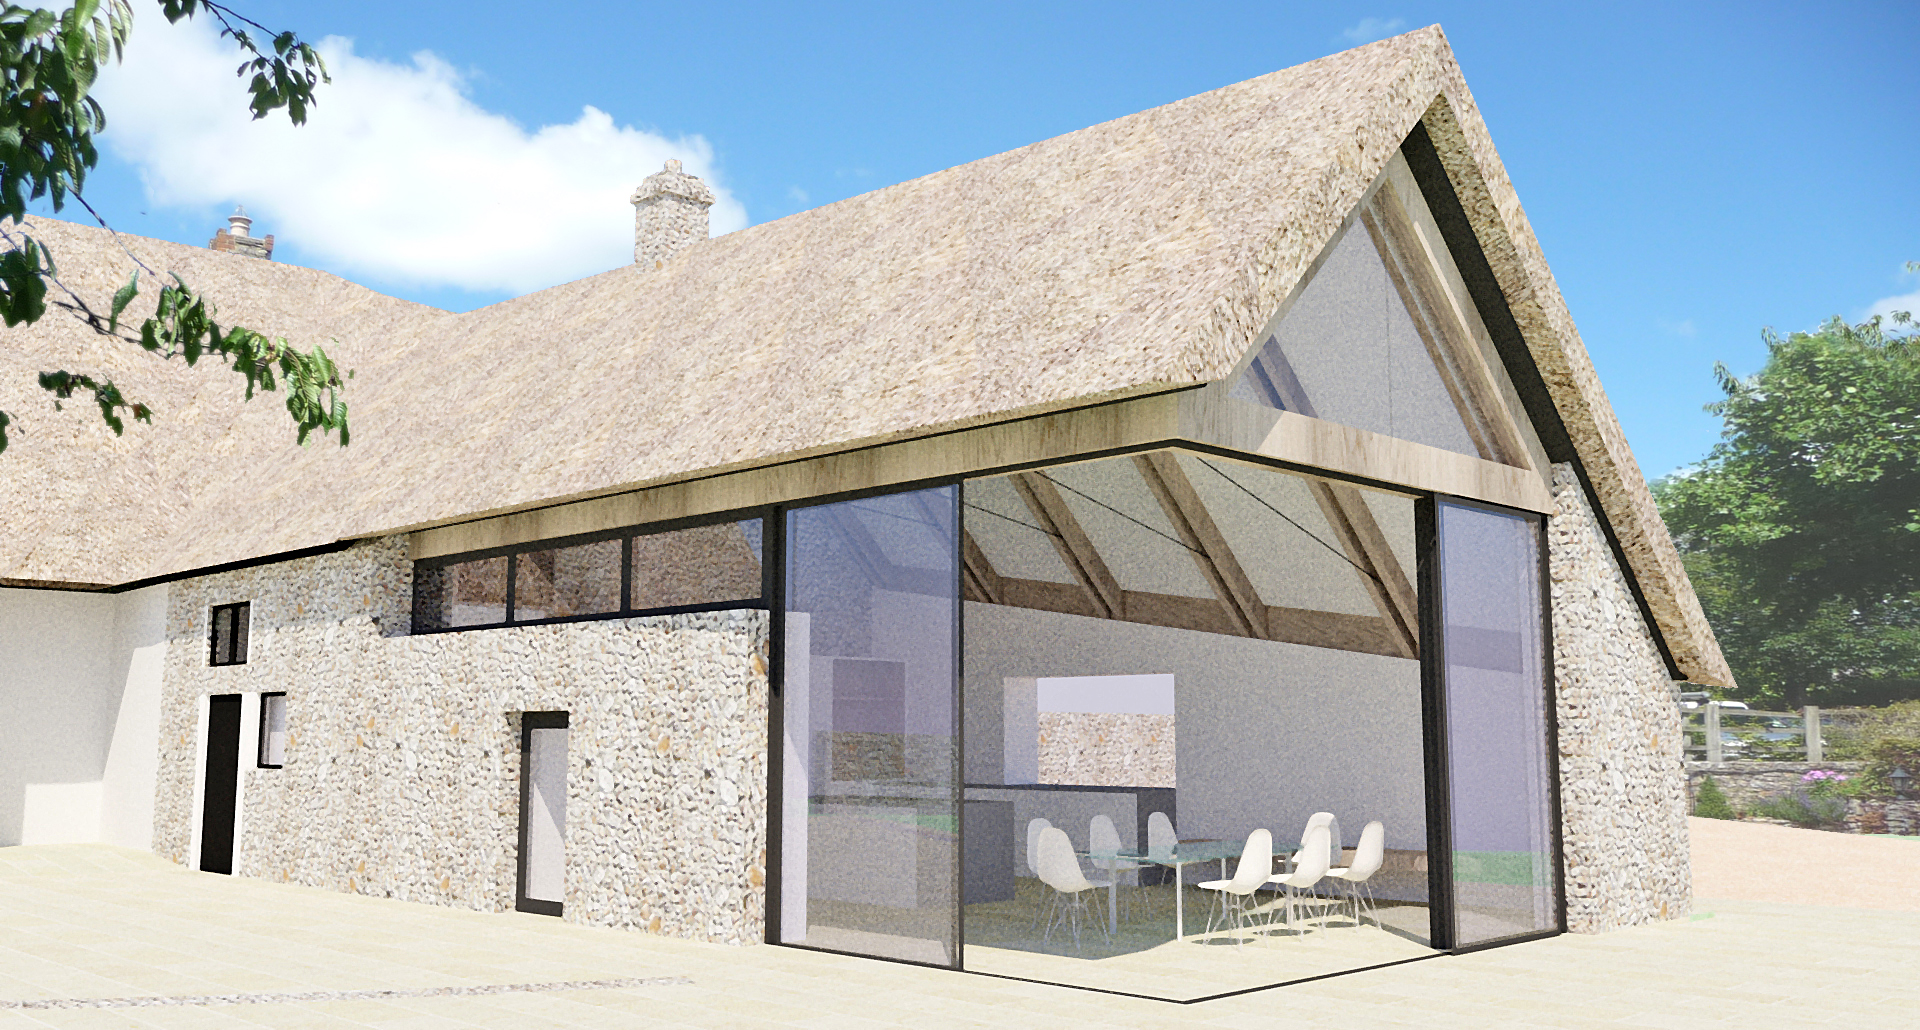 A contemporay thatched roof extension to a listed